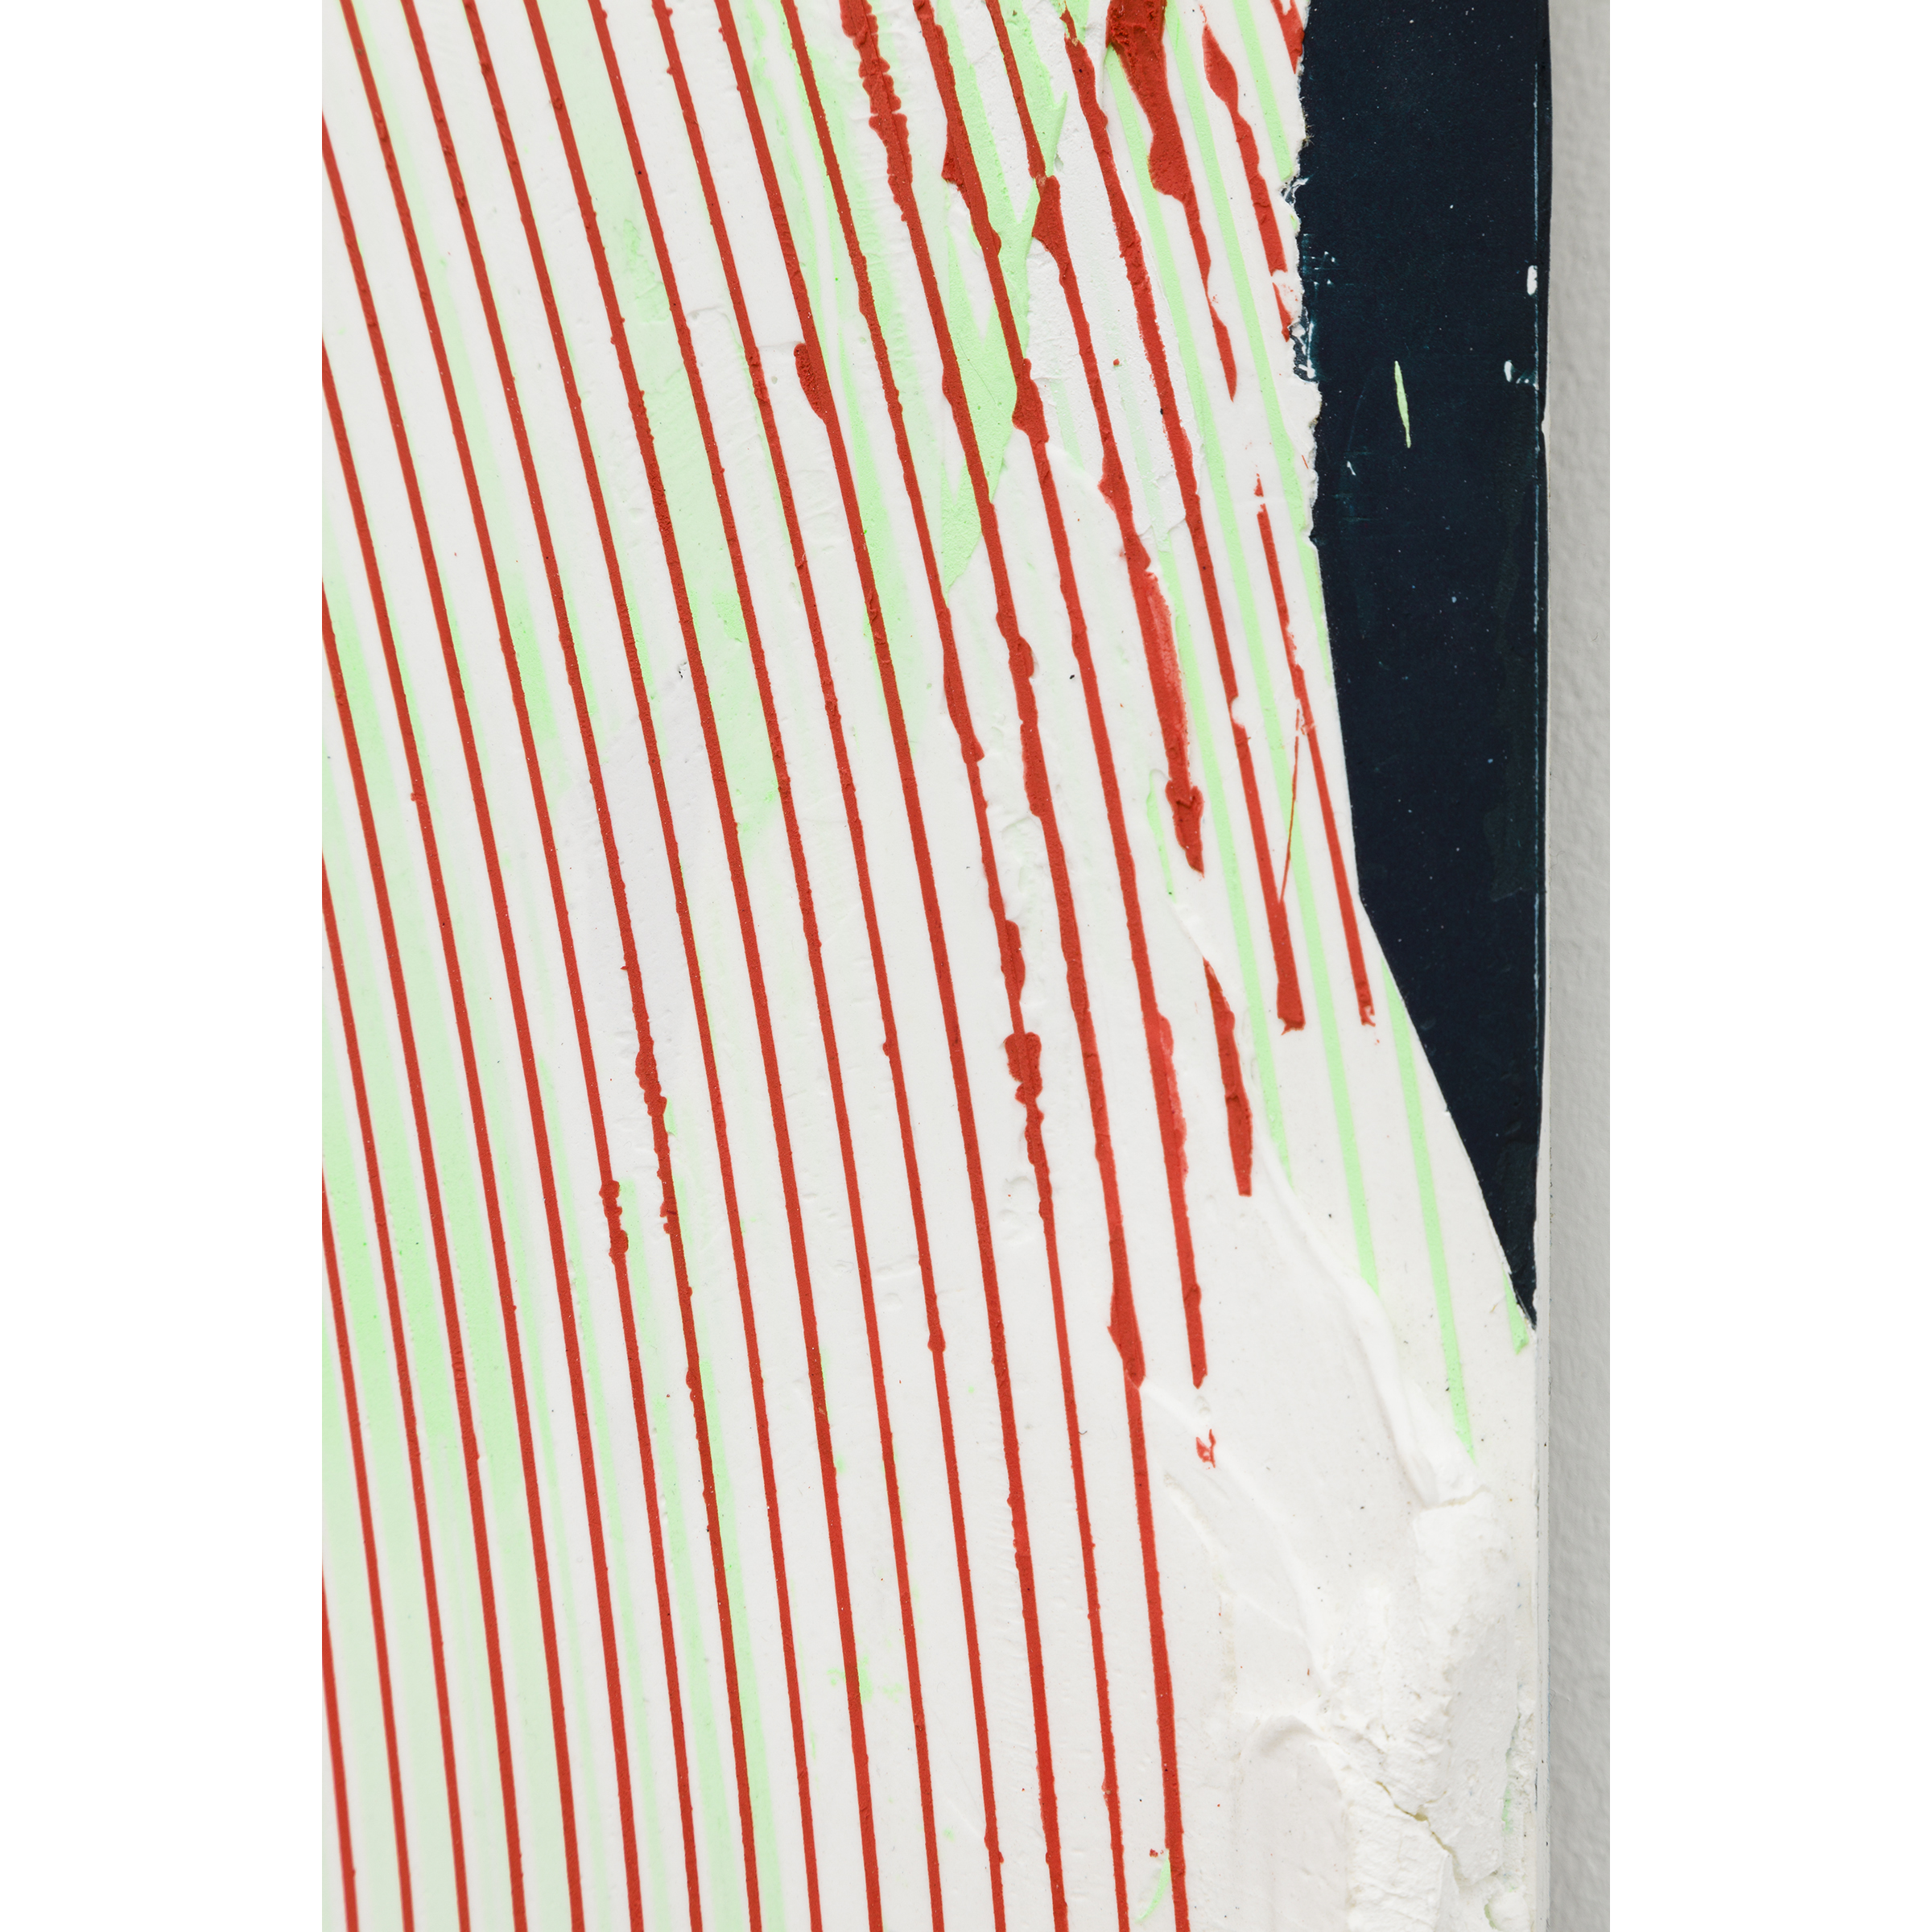 Nicolas Roggy, Untitled  (detail), 2014,primer, modeling paste, pigment,acrylic paint on PVC,92.9 x 82.7 x 1 in